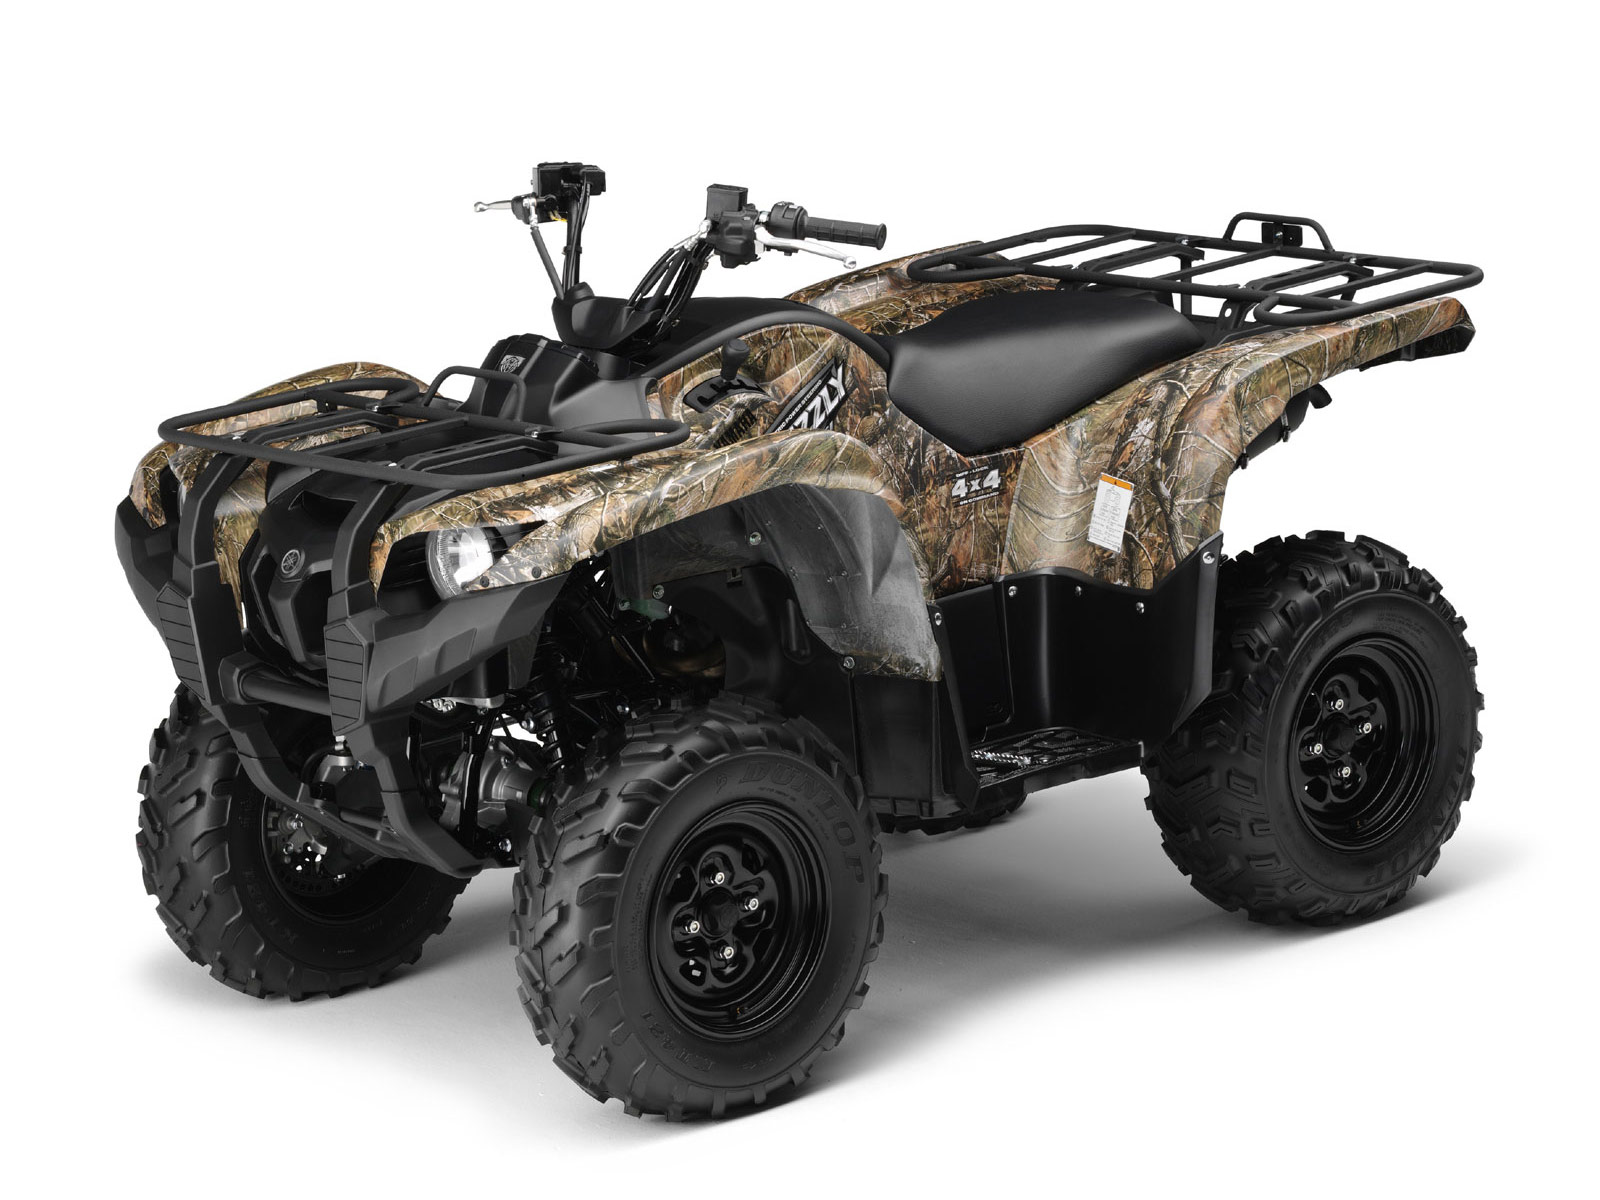 ATV wallpapers 2009 YAMAHA Grizzly 700 FI specifications 1600x1200